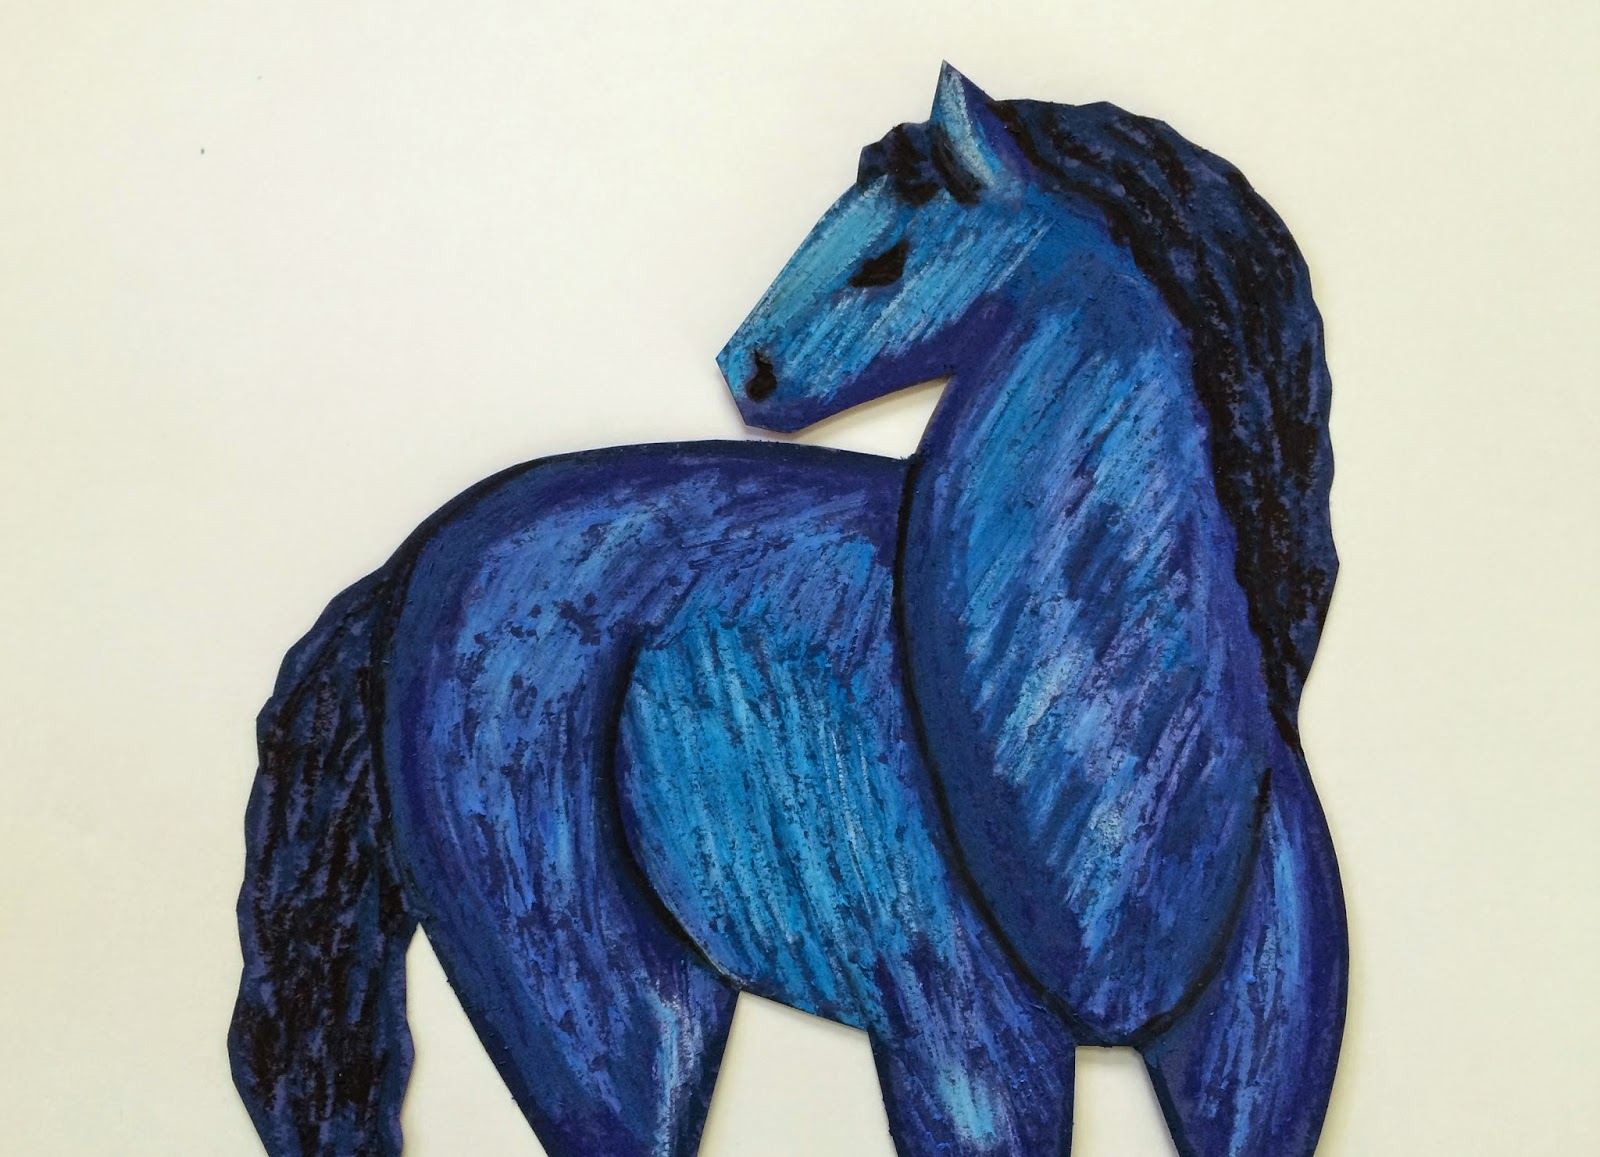 They'll Use An Assortment Of Blue, Black And White Oil Pastels To Create A  Rich Layering Of Color For Their Horse